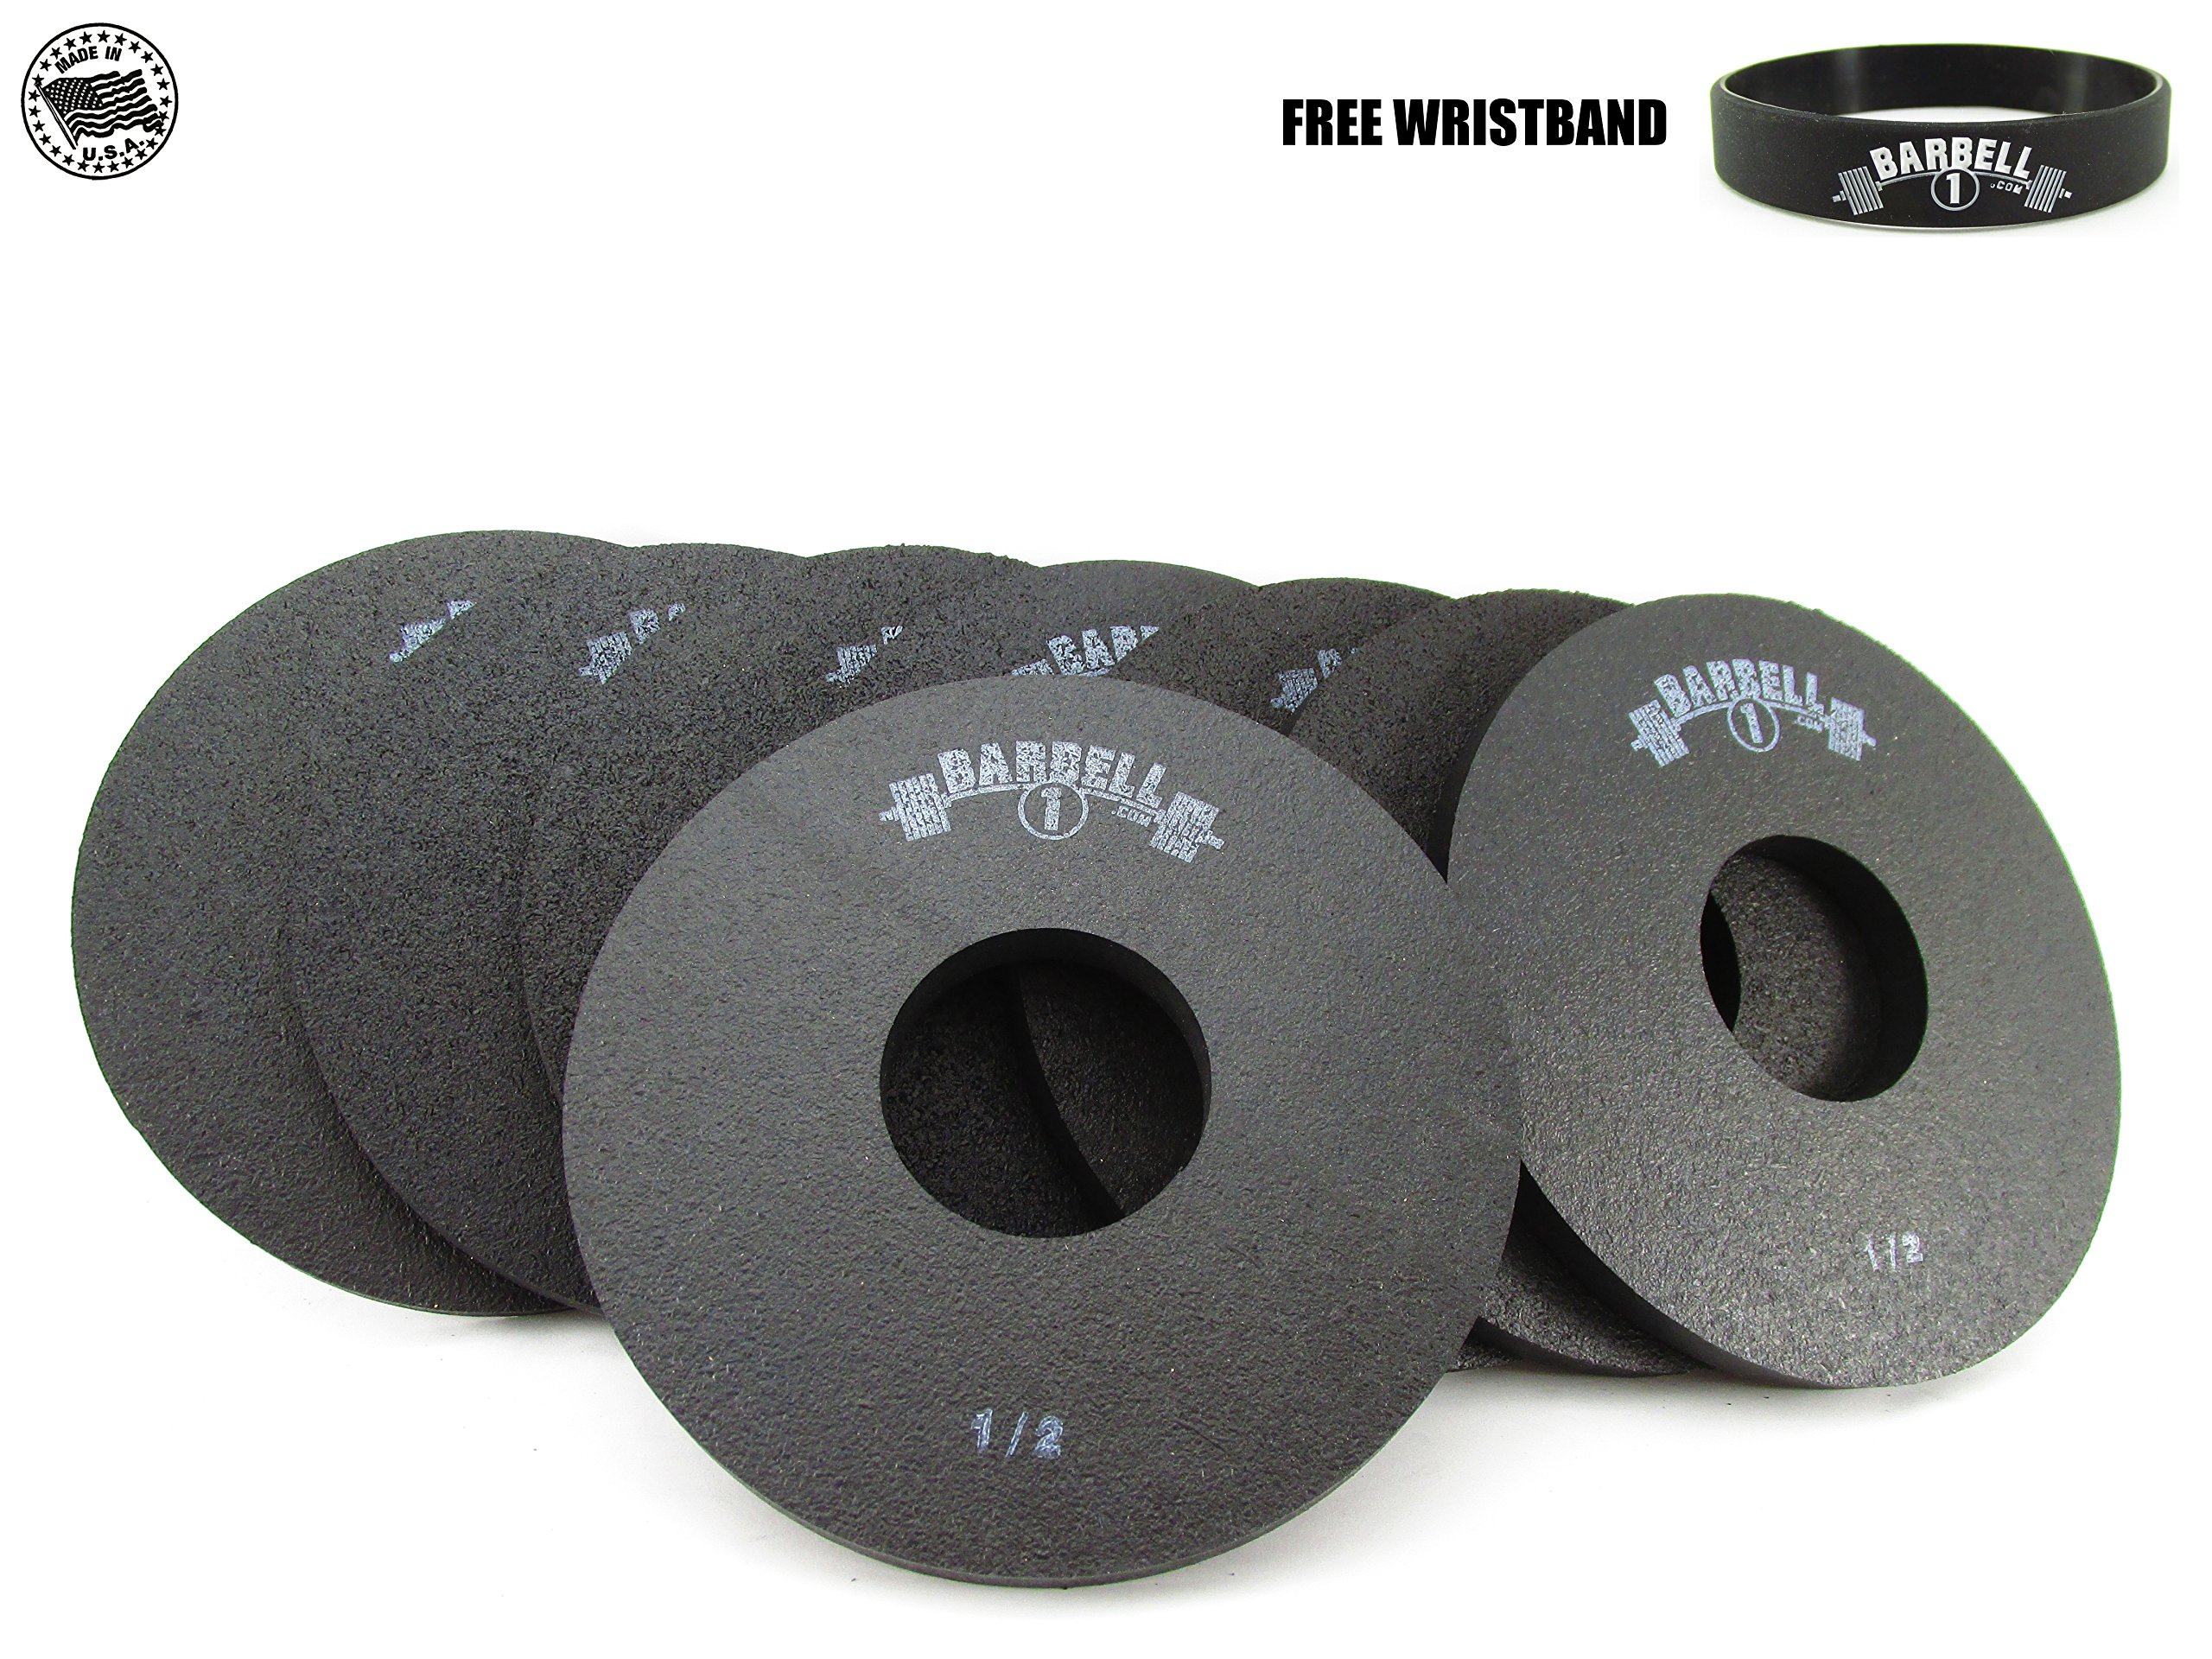 Barbell 1 Half Pound Fractional Rubber Olympic Weight Plates - 2, 4, 6, or 8 Pc Set (6 plates, 1/2 lb.) by Barbell 1 (Image #1)